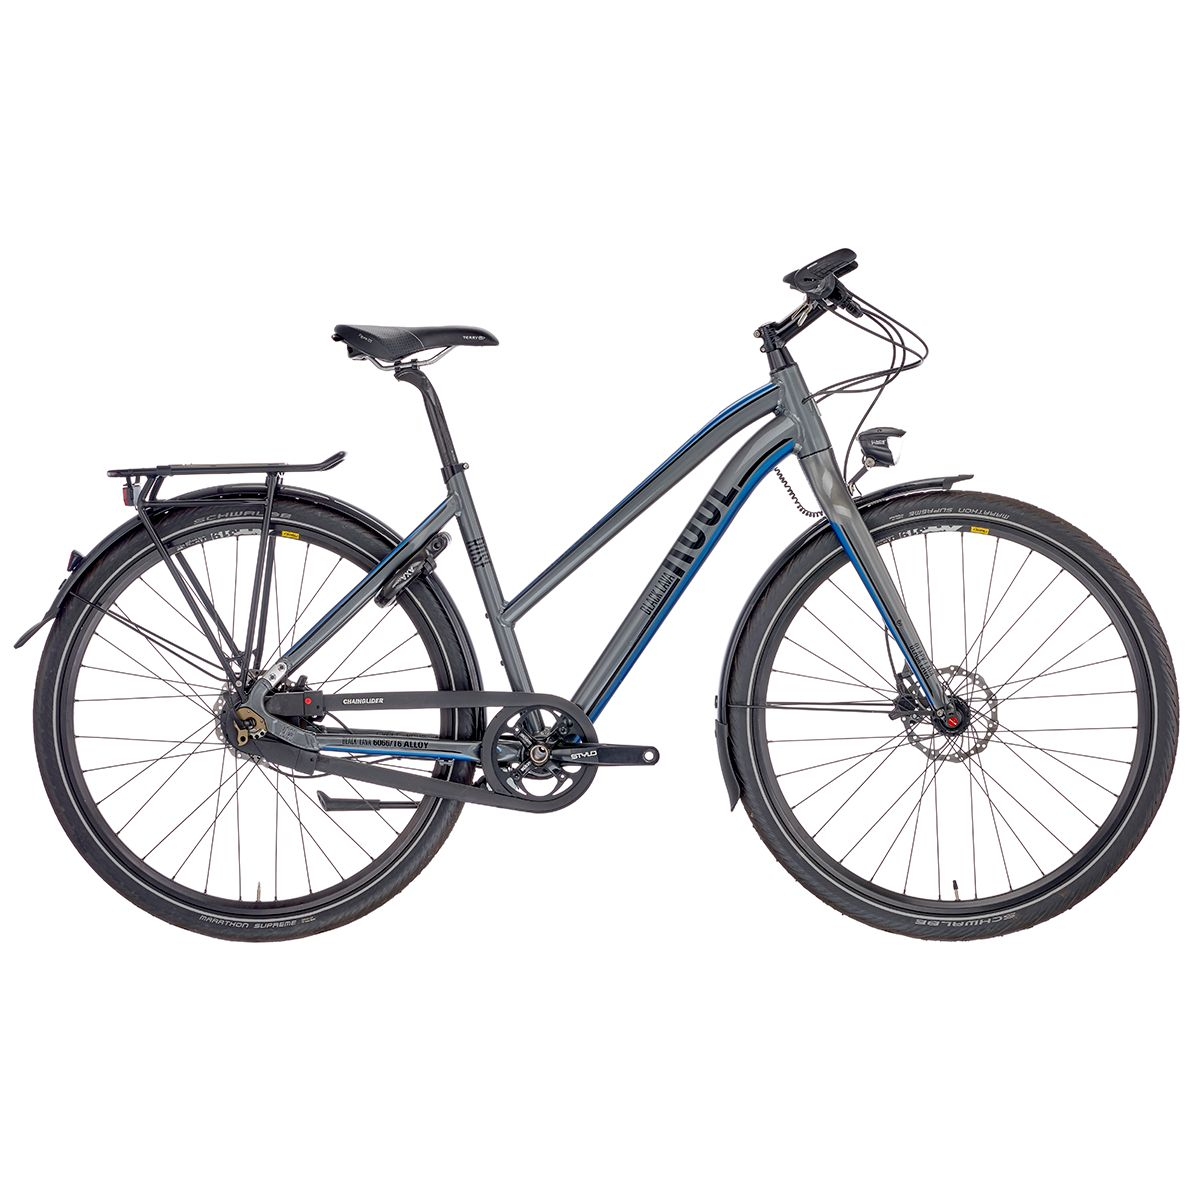 ROSE BLACK LAVA 5 TREKKING showroom bike | City